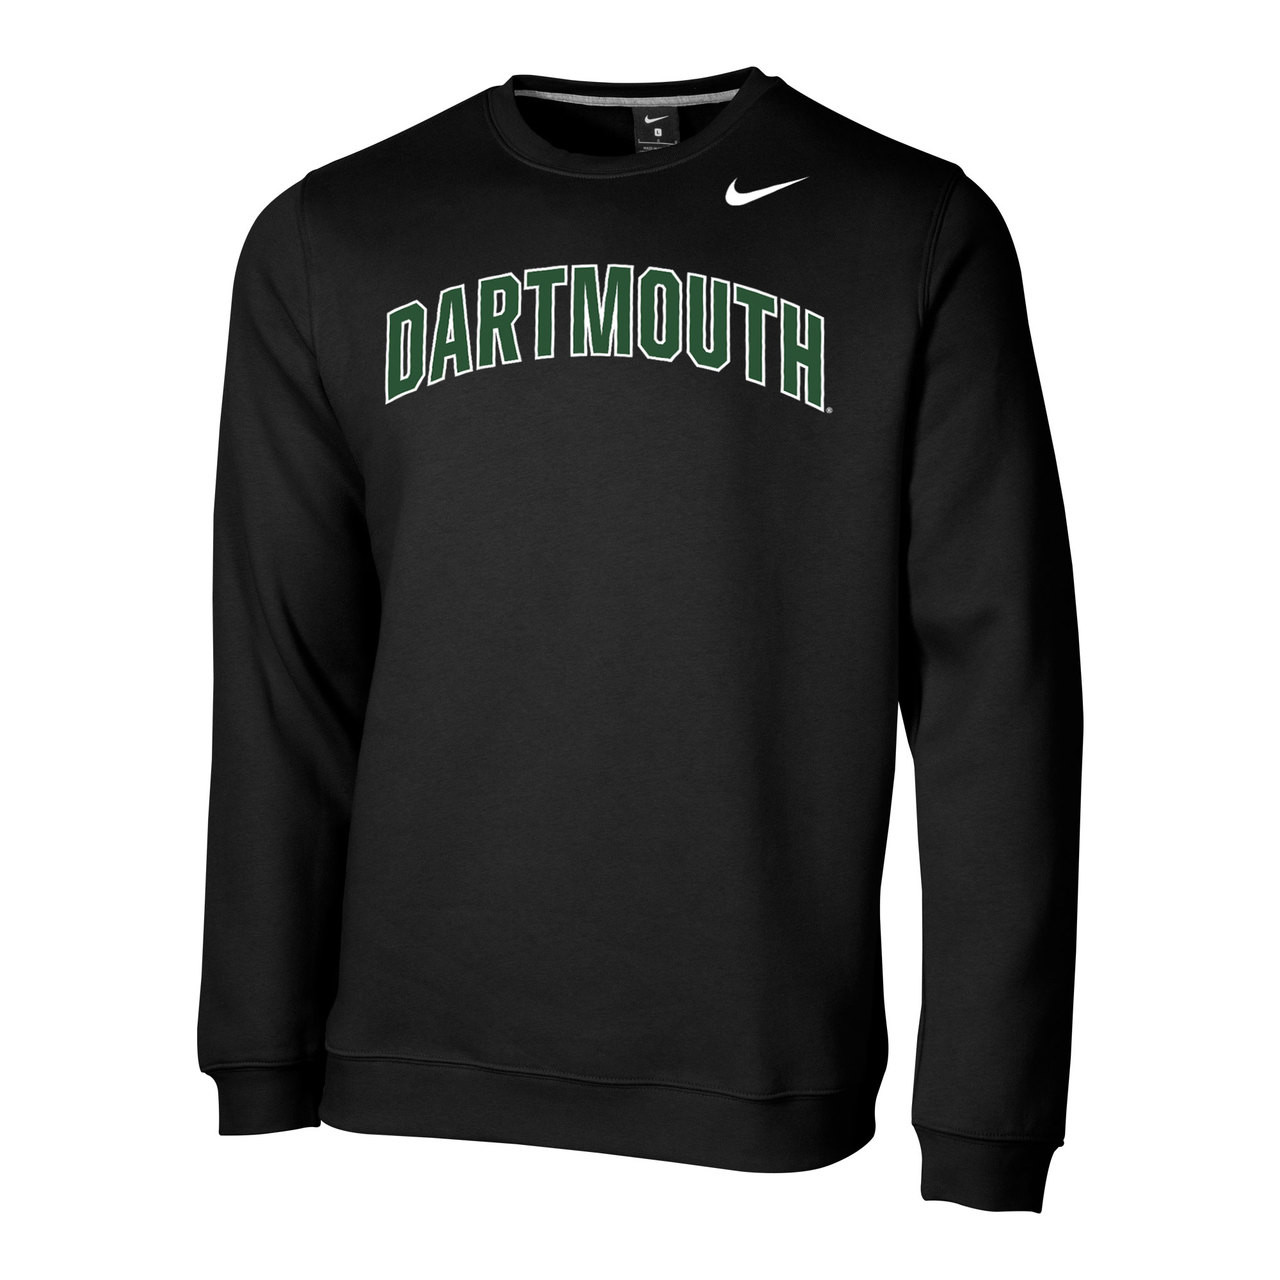 b791a98f80c26 Men s Nike black crew neck sweatshirt with  Dartmouth  across chest in green  and Nike